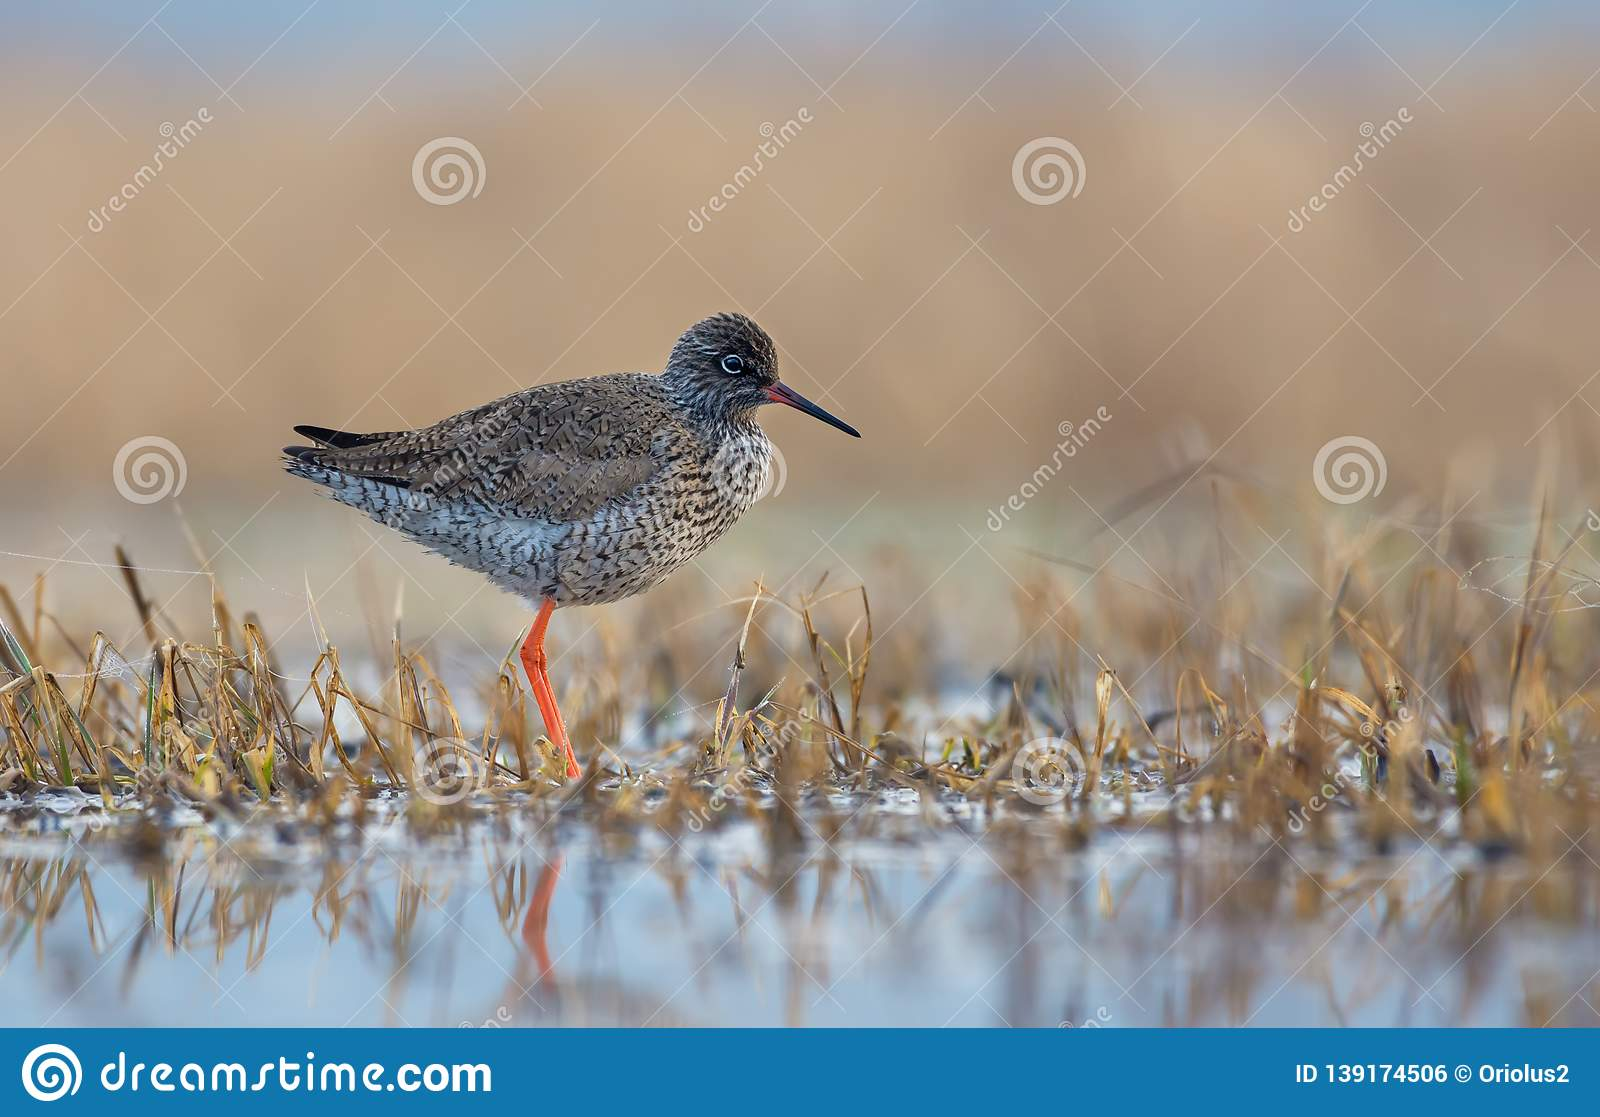 Common Redshank posing alone on the shore in shallow waters